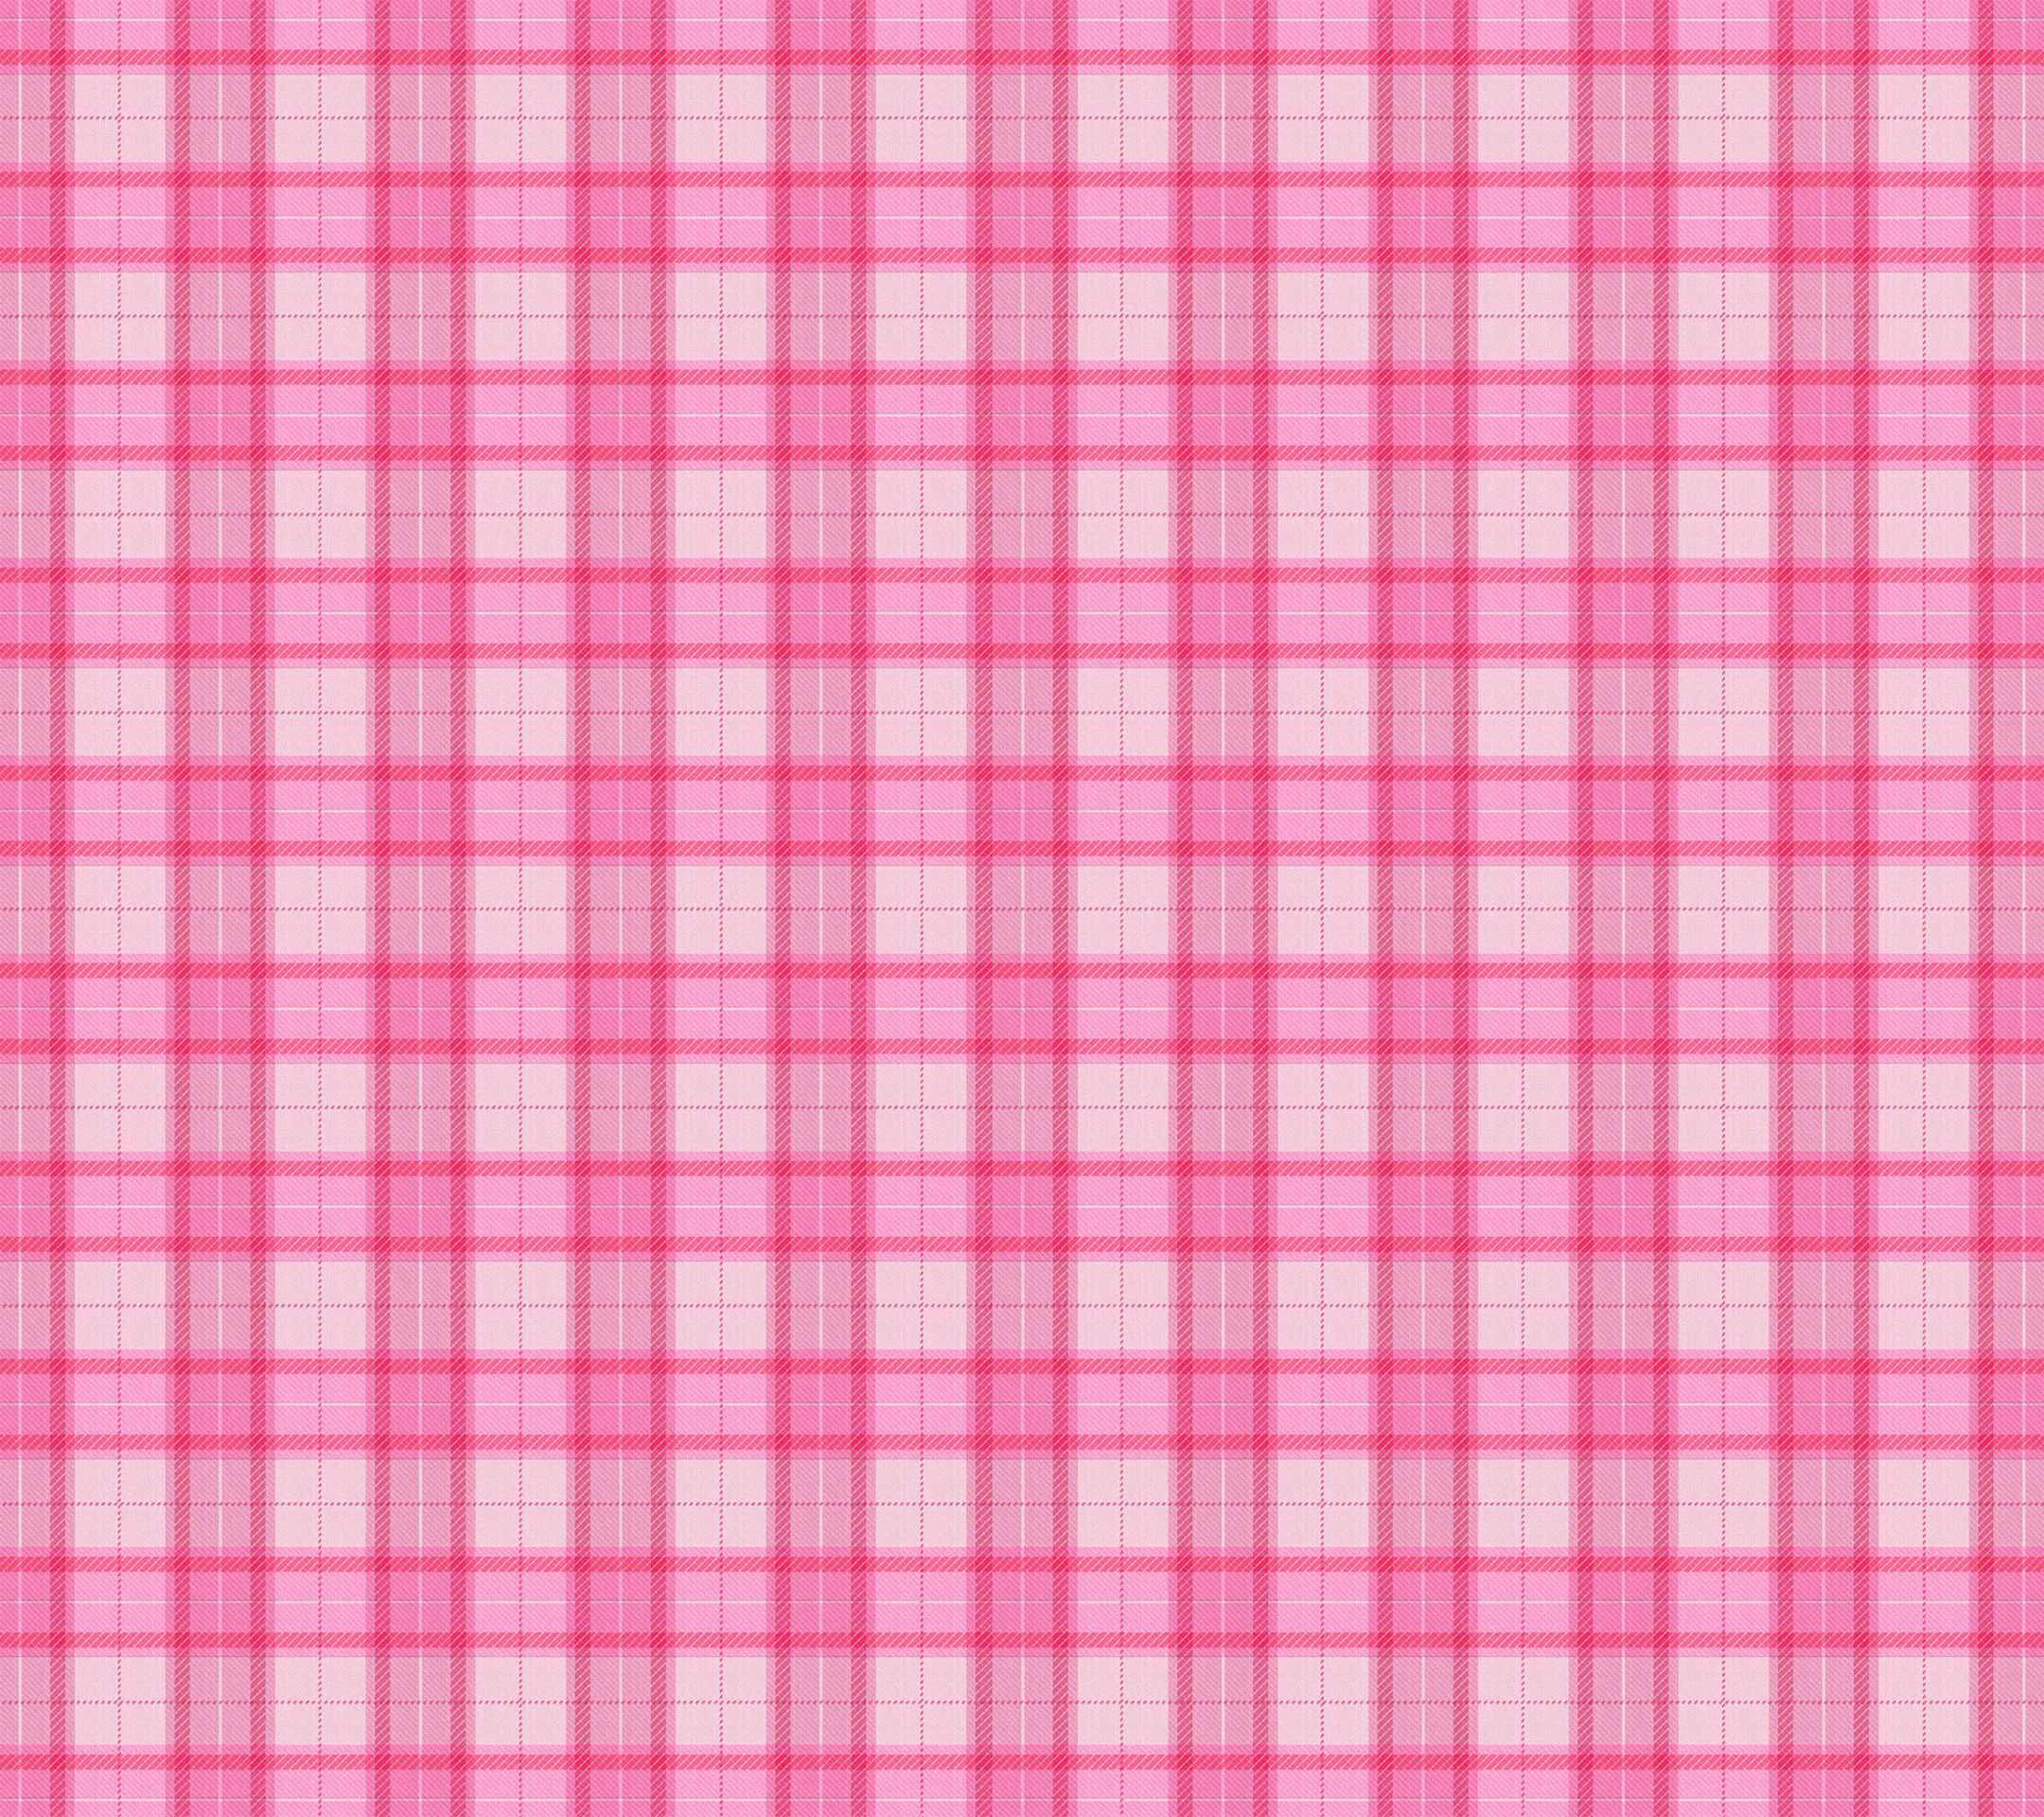 Pink plaid. Tap to see more pinky girly Android HD